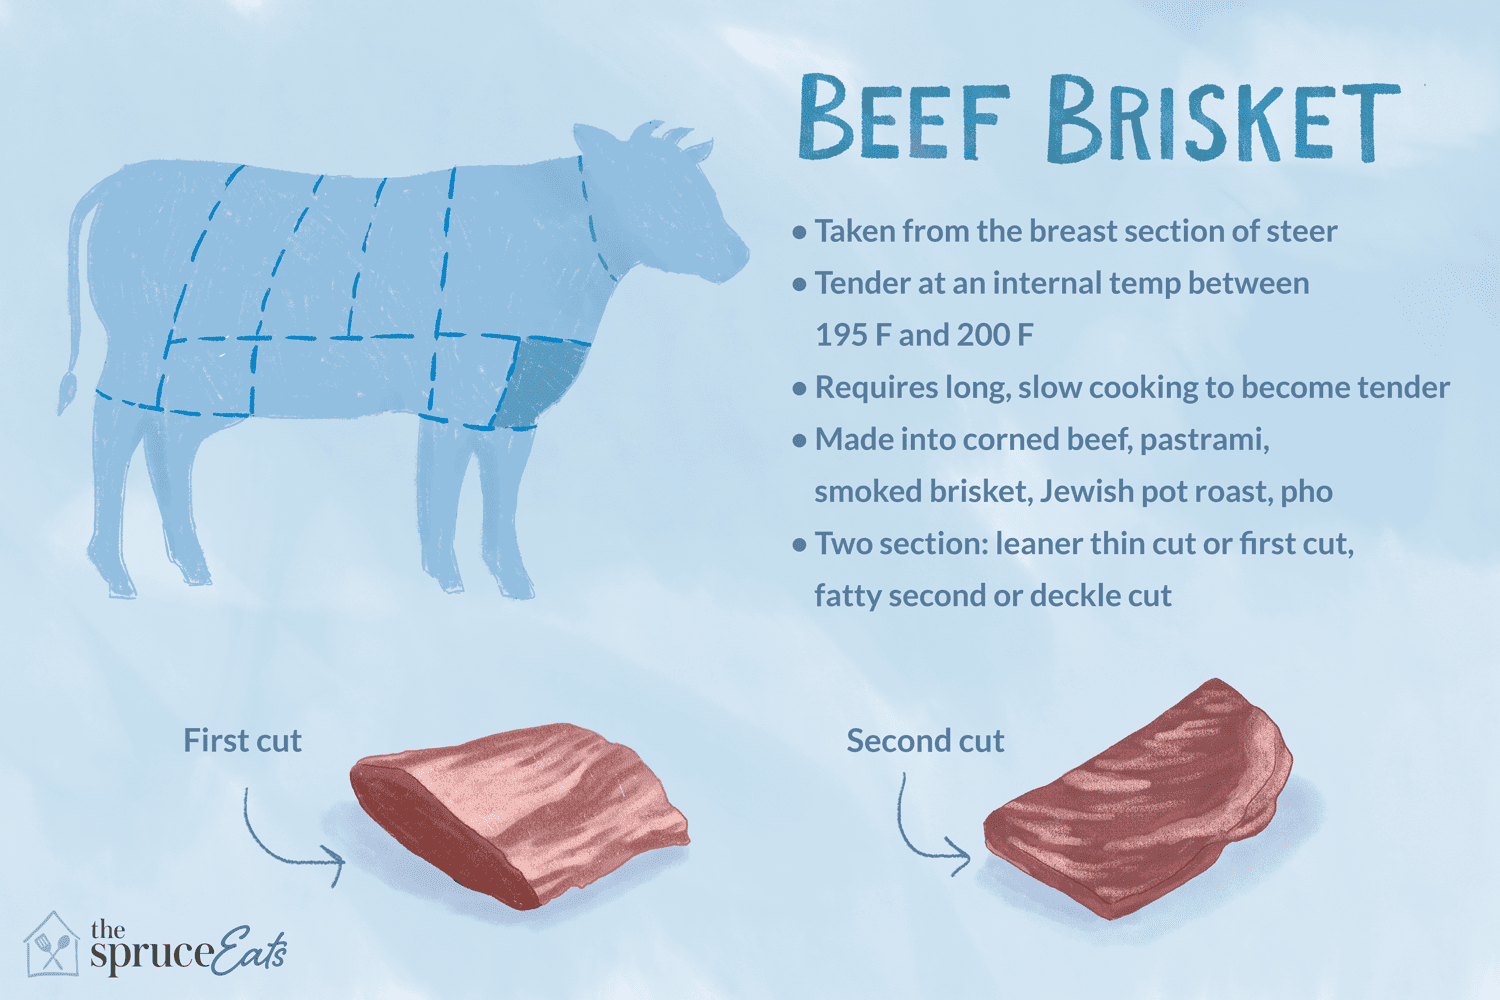 What Is Beef Brisket?